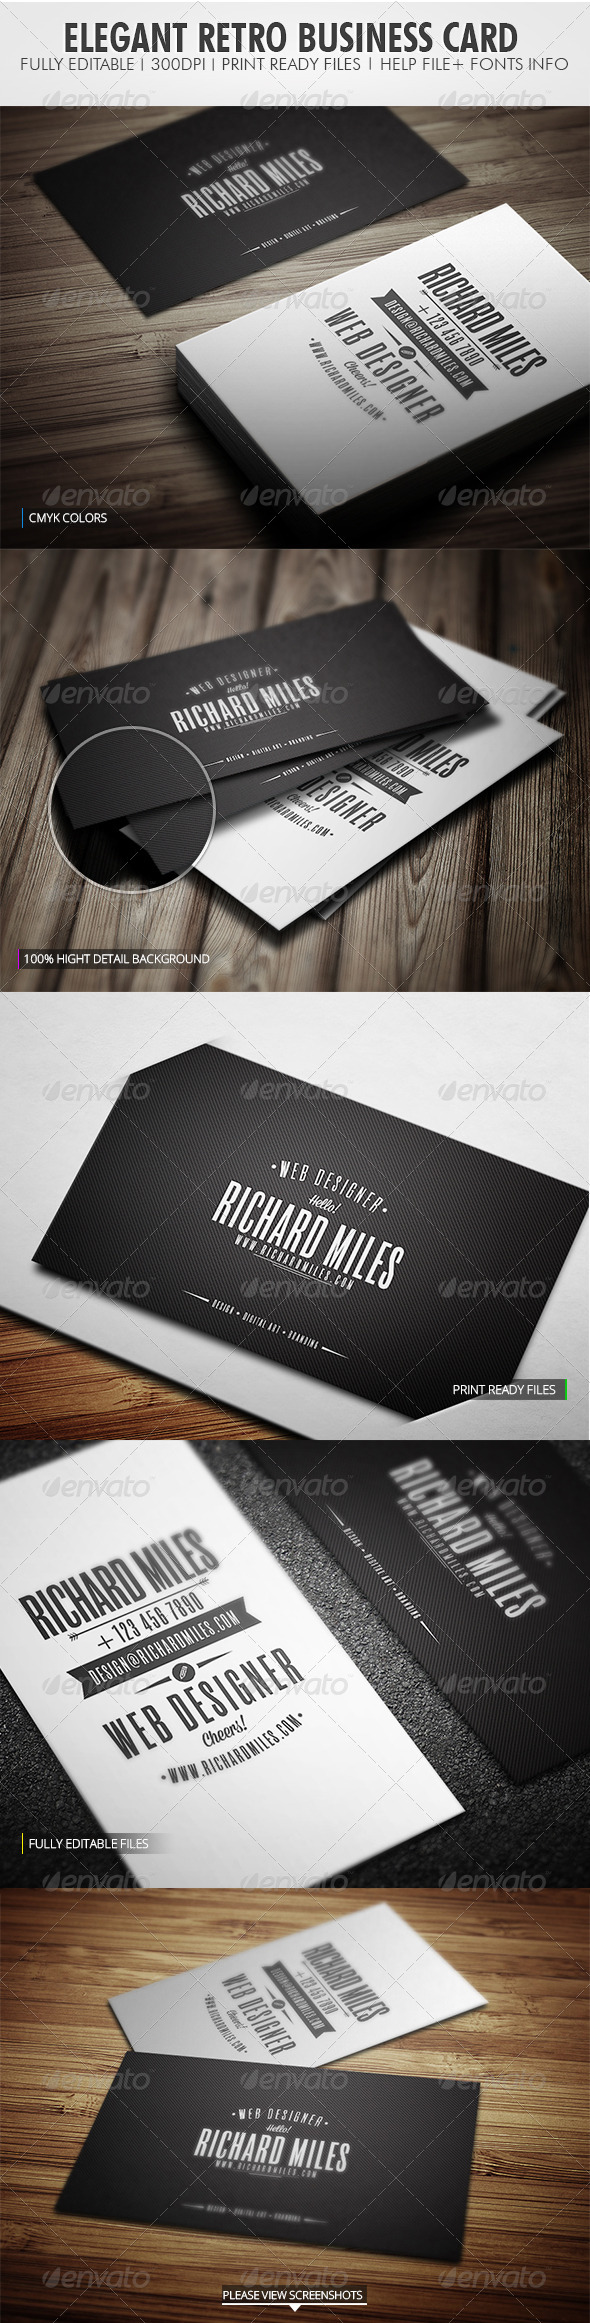 Elegant Retro Business Card - Retro/Vintage Business Cards